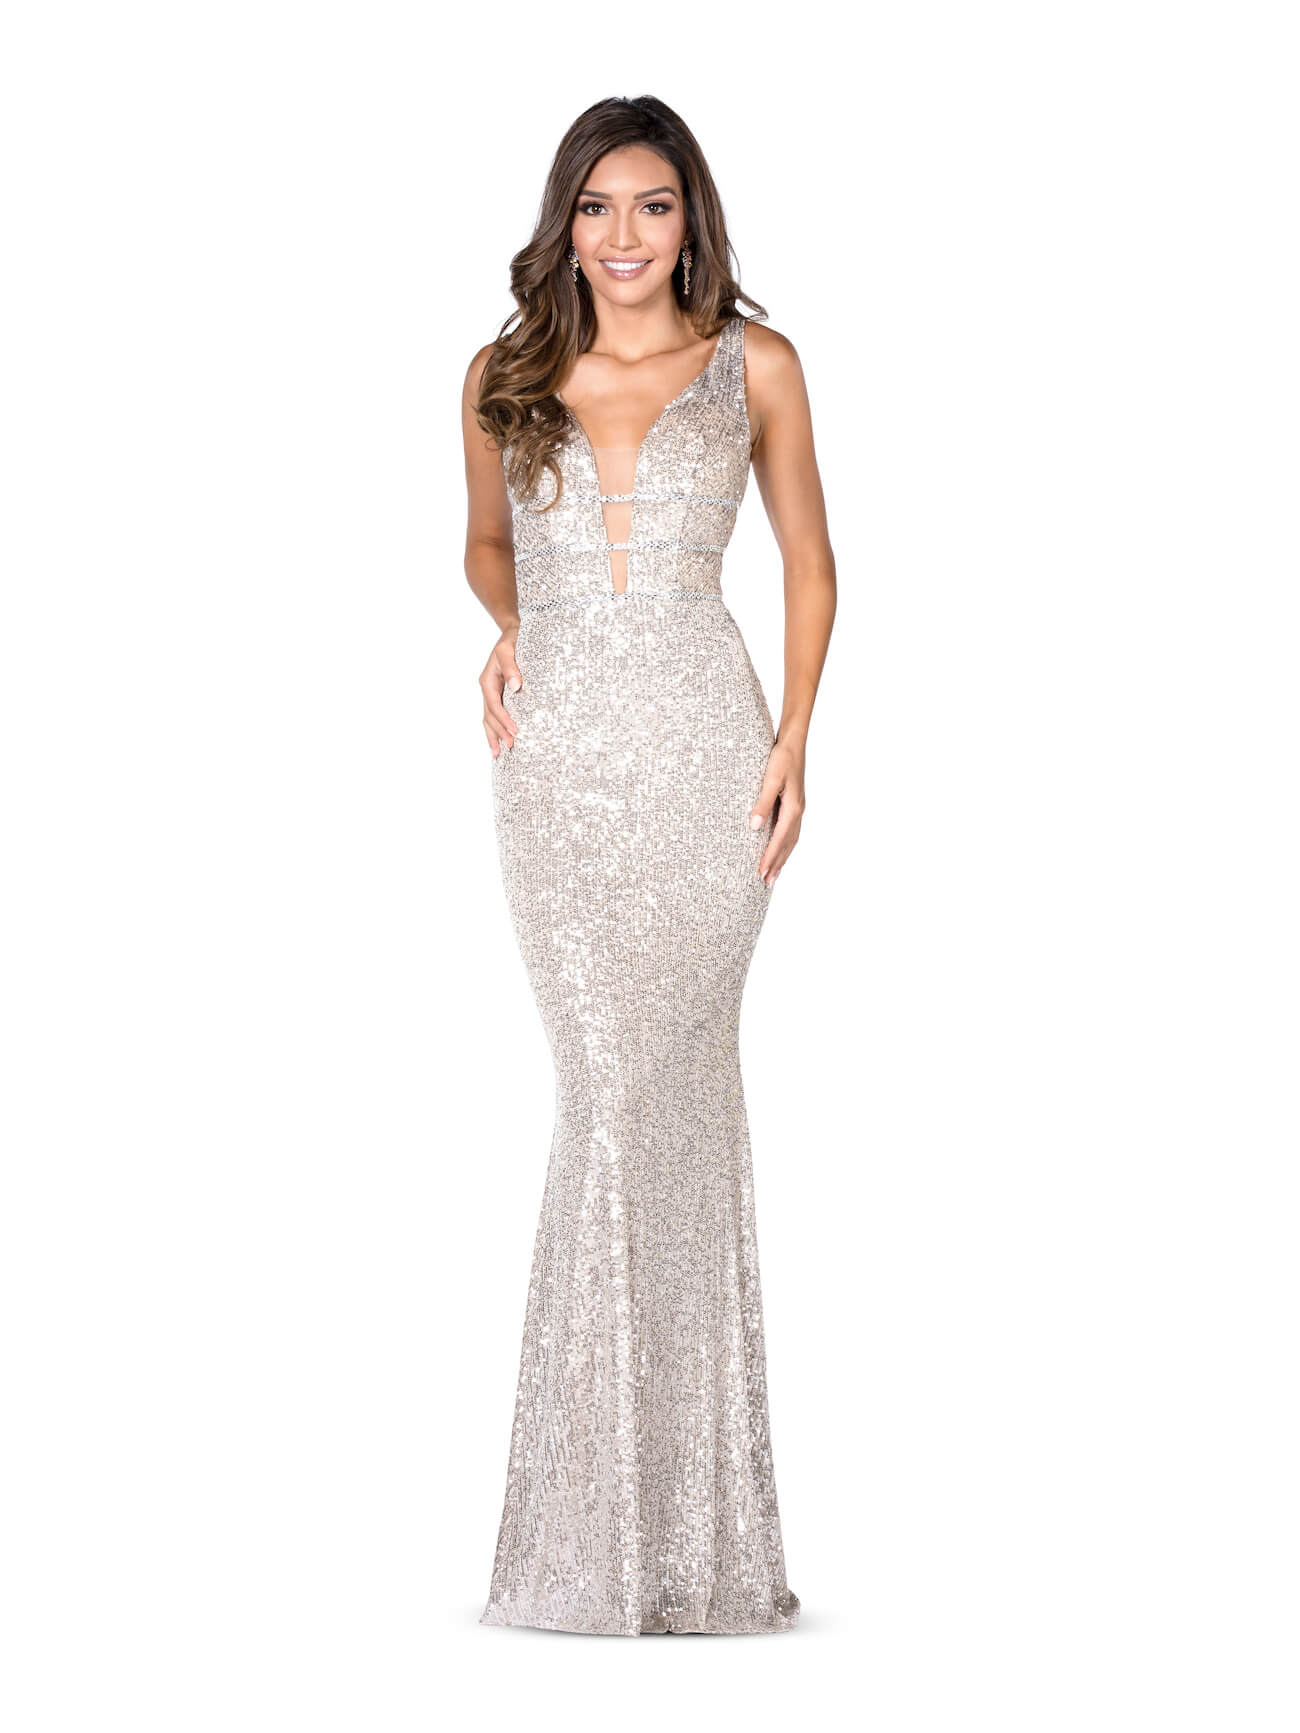 Vienna Gold Size 10 Plunge Backless Mermaid Dress on Queenly